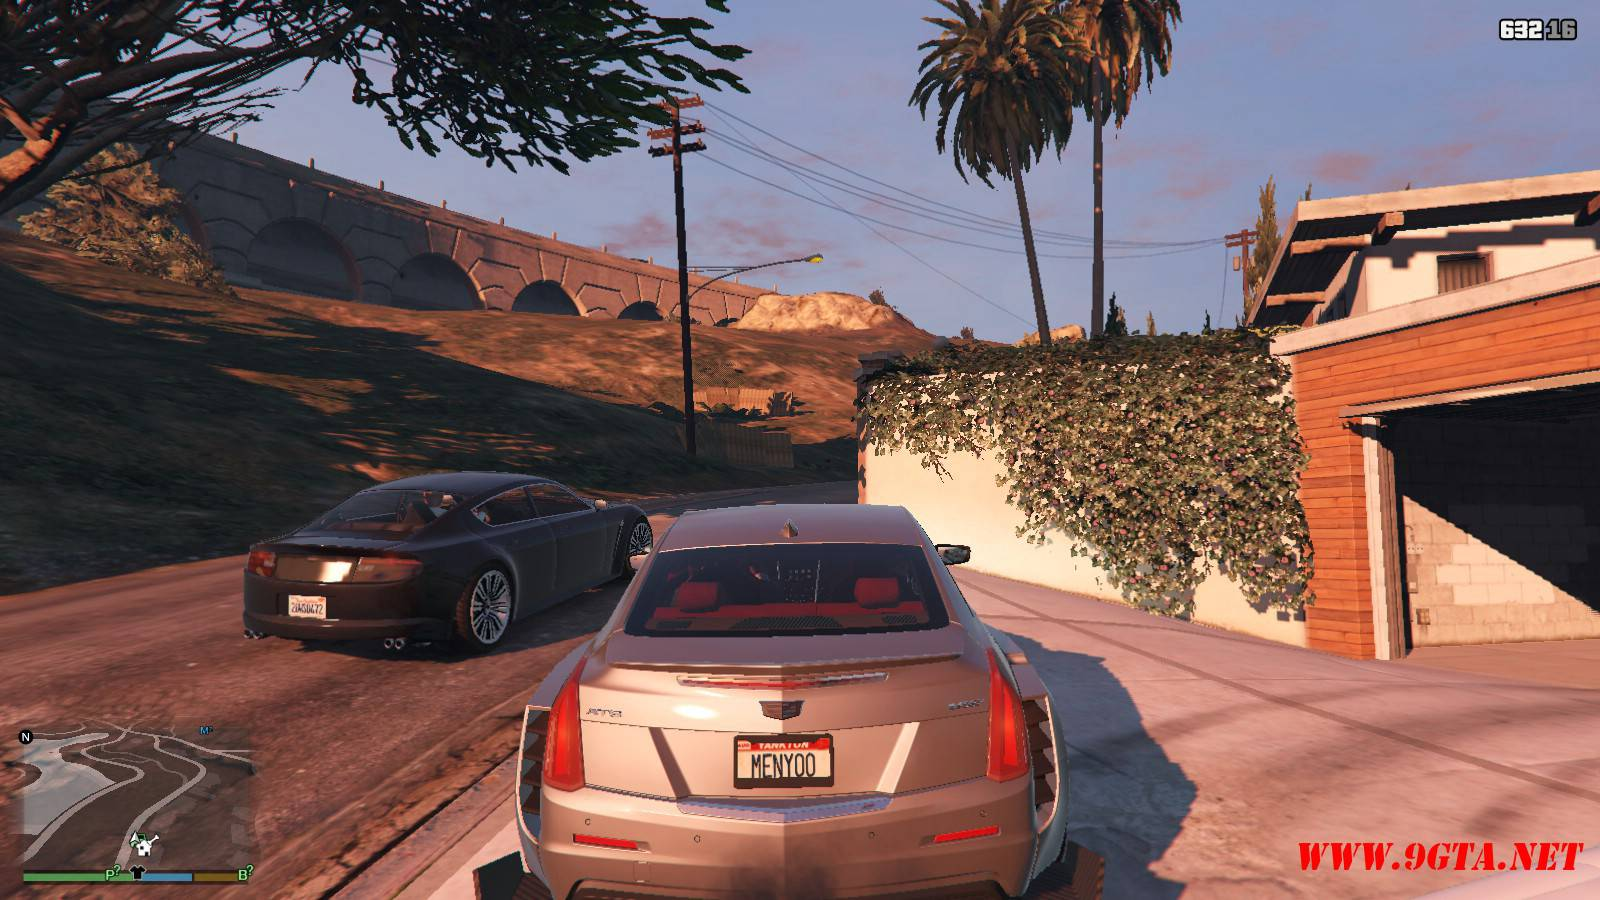 2016 Cadillac ATS-V Forza Edition Mod For GTA5 (5)